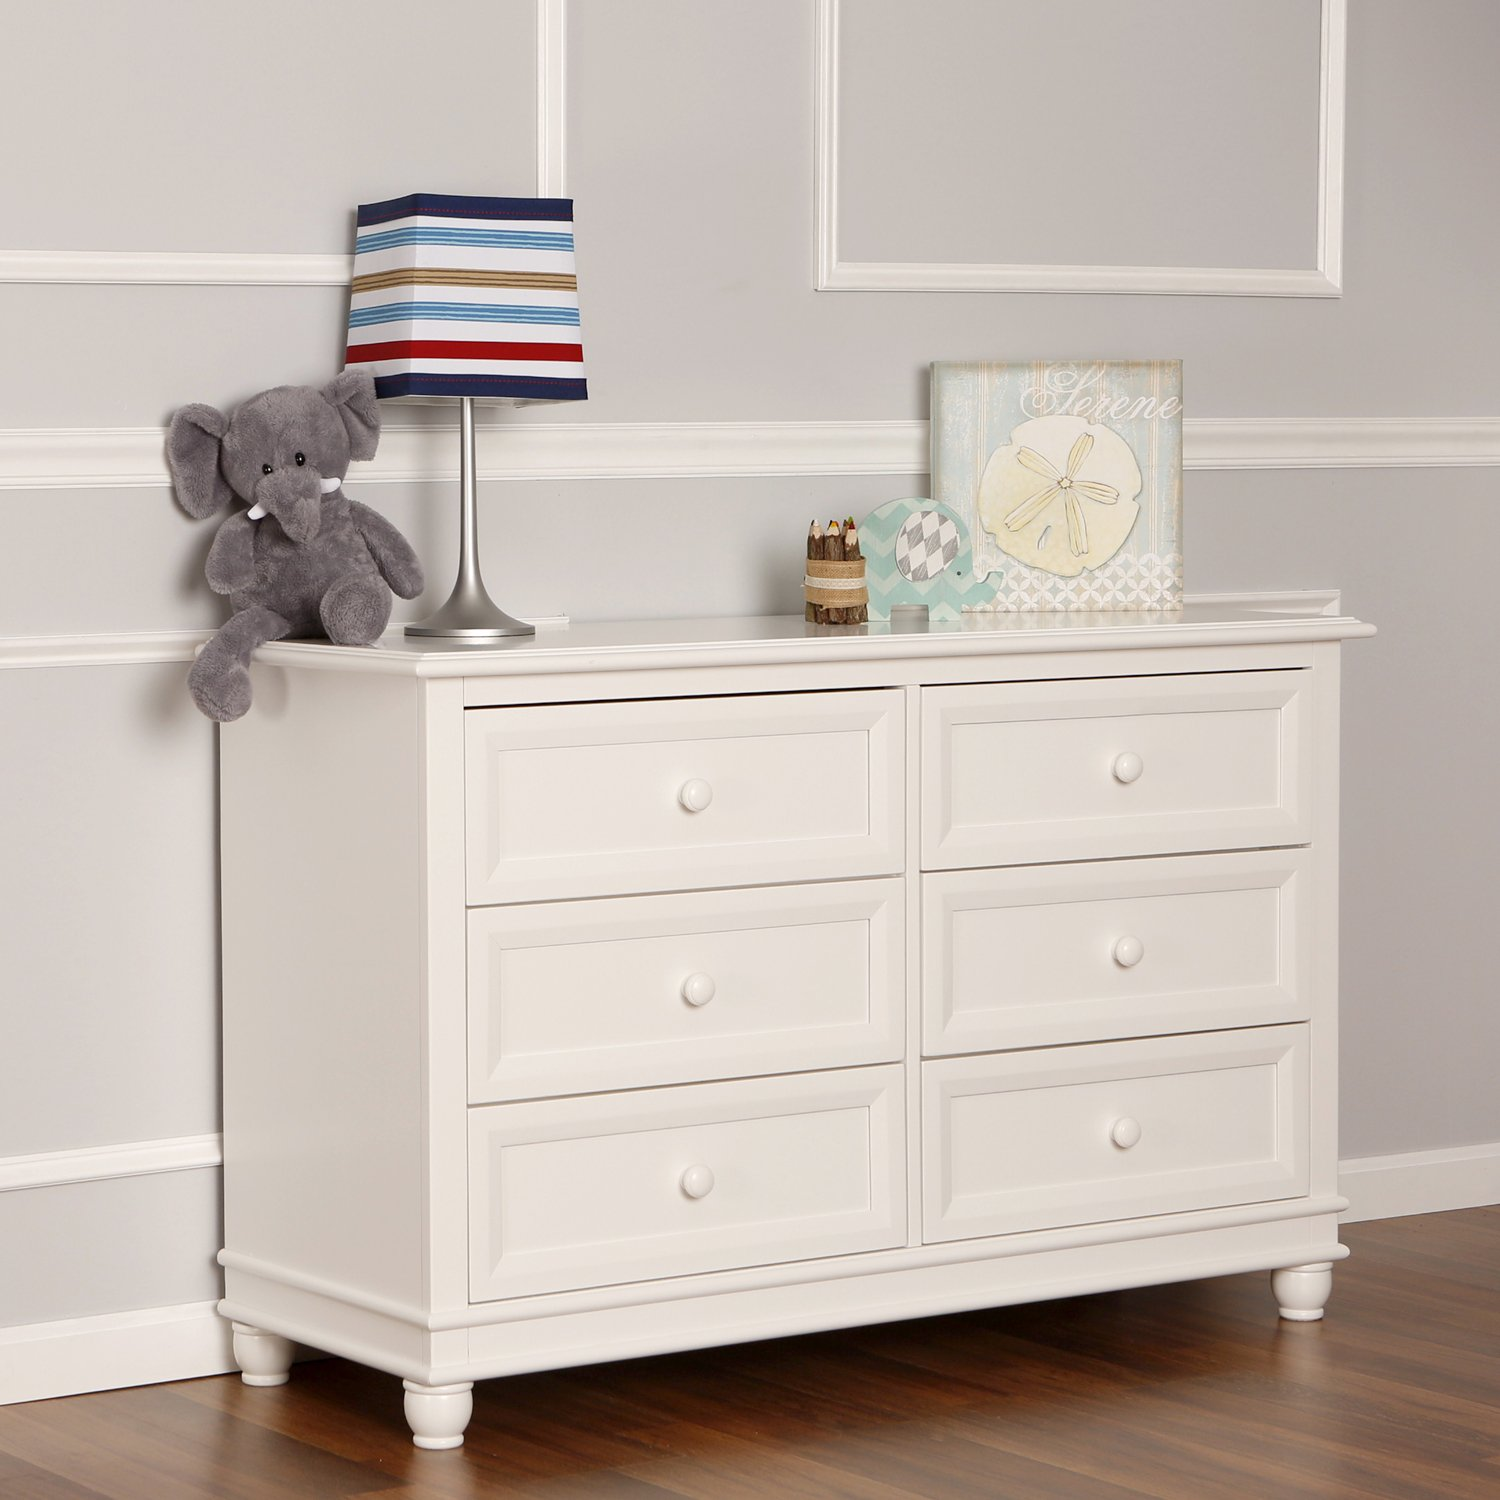 me dream changing drawer in com collection table white liberty amazon on crib dp convertible dresser